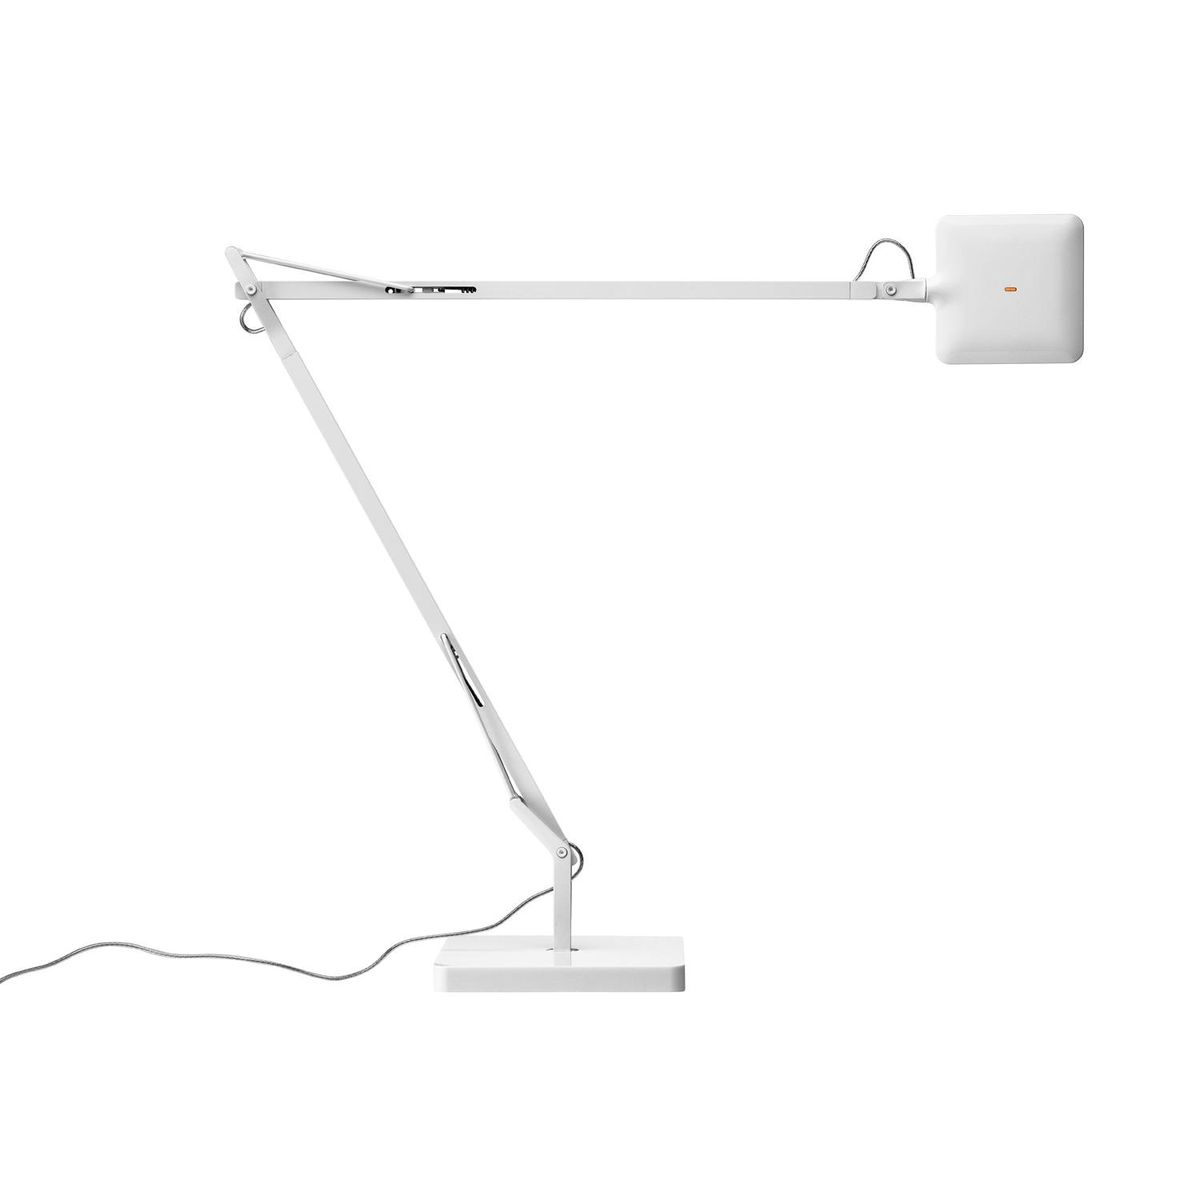 Flos - Kelvin LED Green Mode Desk L& With Base - white/3000K/325lm  sc 1 st  AmbienteDirect & Kelvin LED Green Mode Desk Lamp With Base | Flos | AmbienteDirect.com azcodes.com